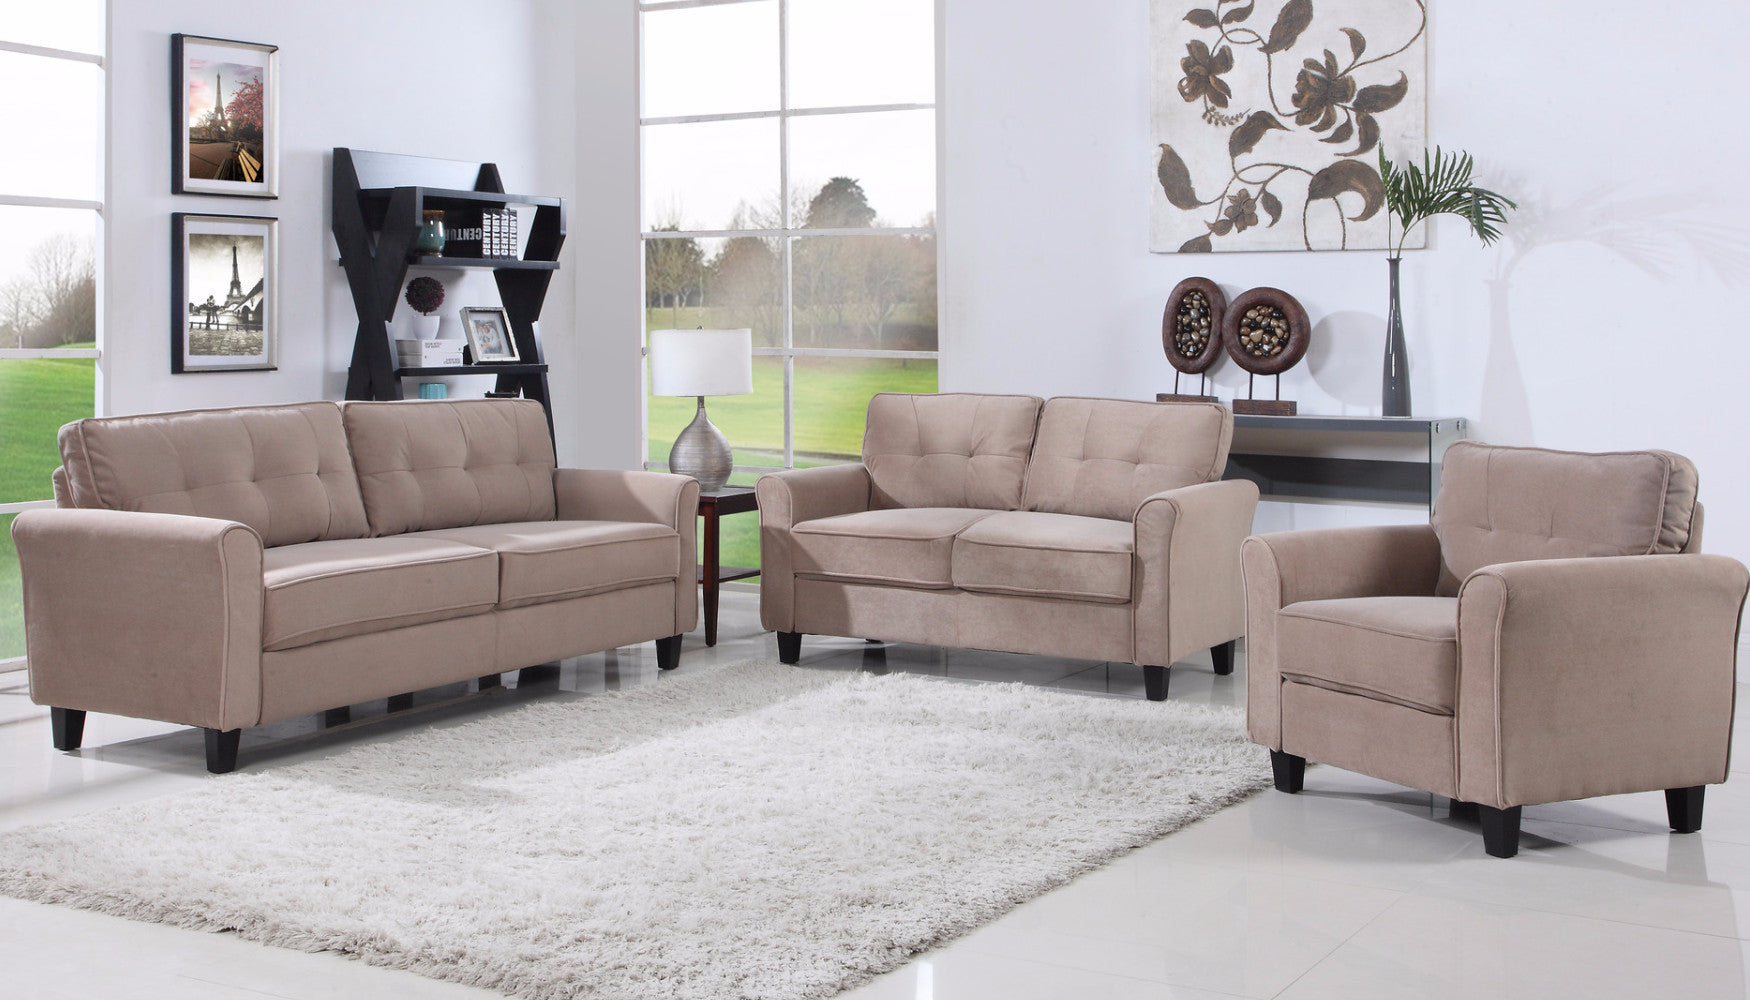 Microfiber Living Room Set Image